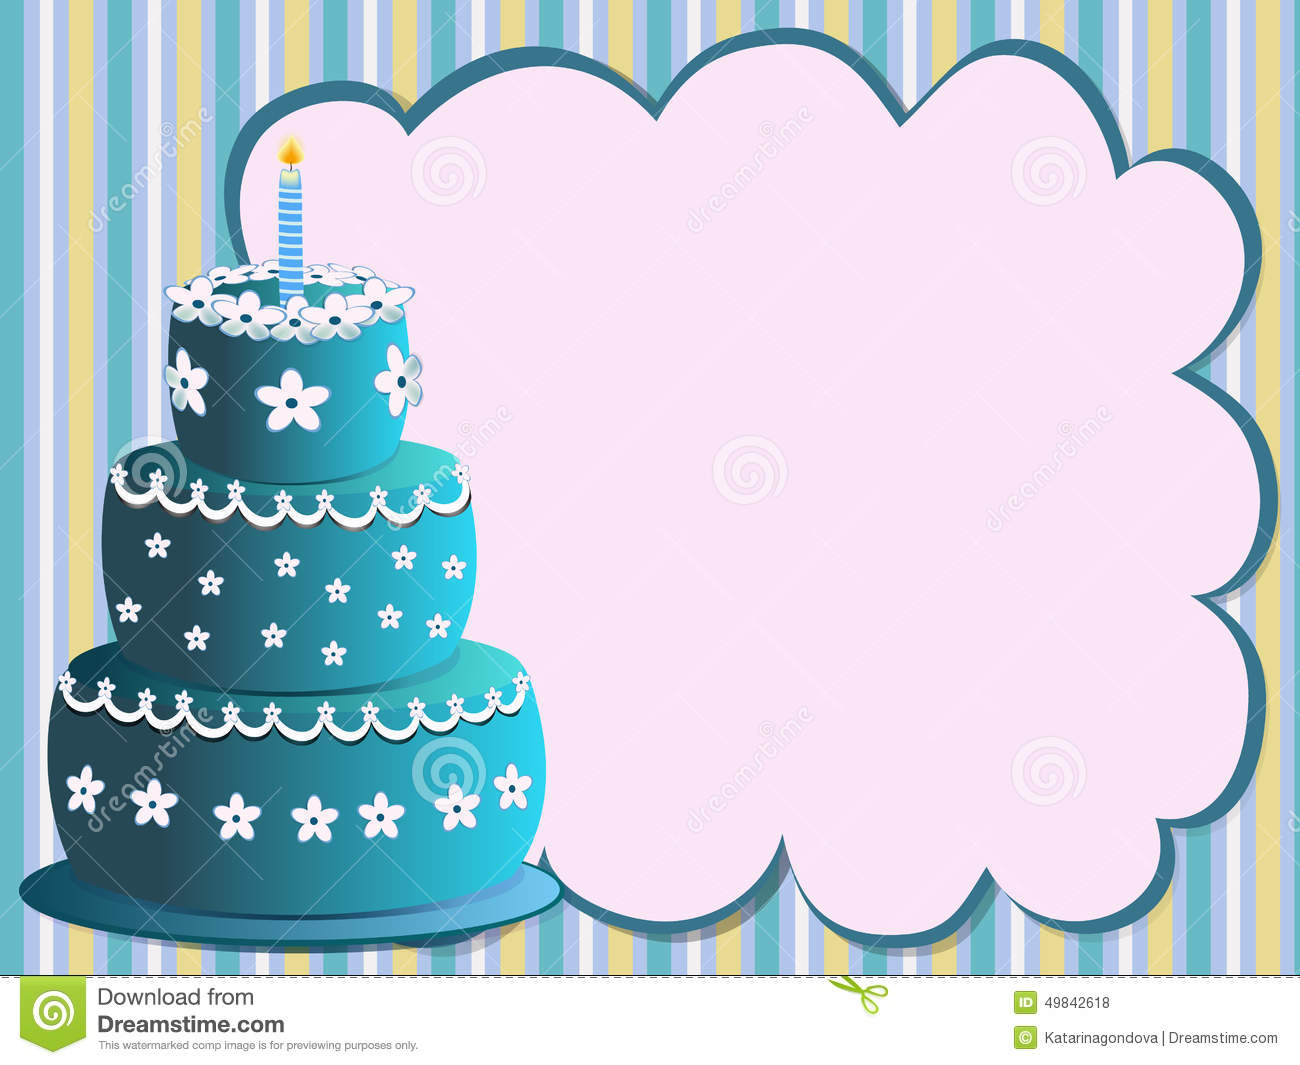 Blue birthday cake clipart clipart free stock Blue Birthday Cake Stock Vector - Image: 49842618 clipart free stock